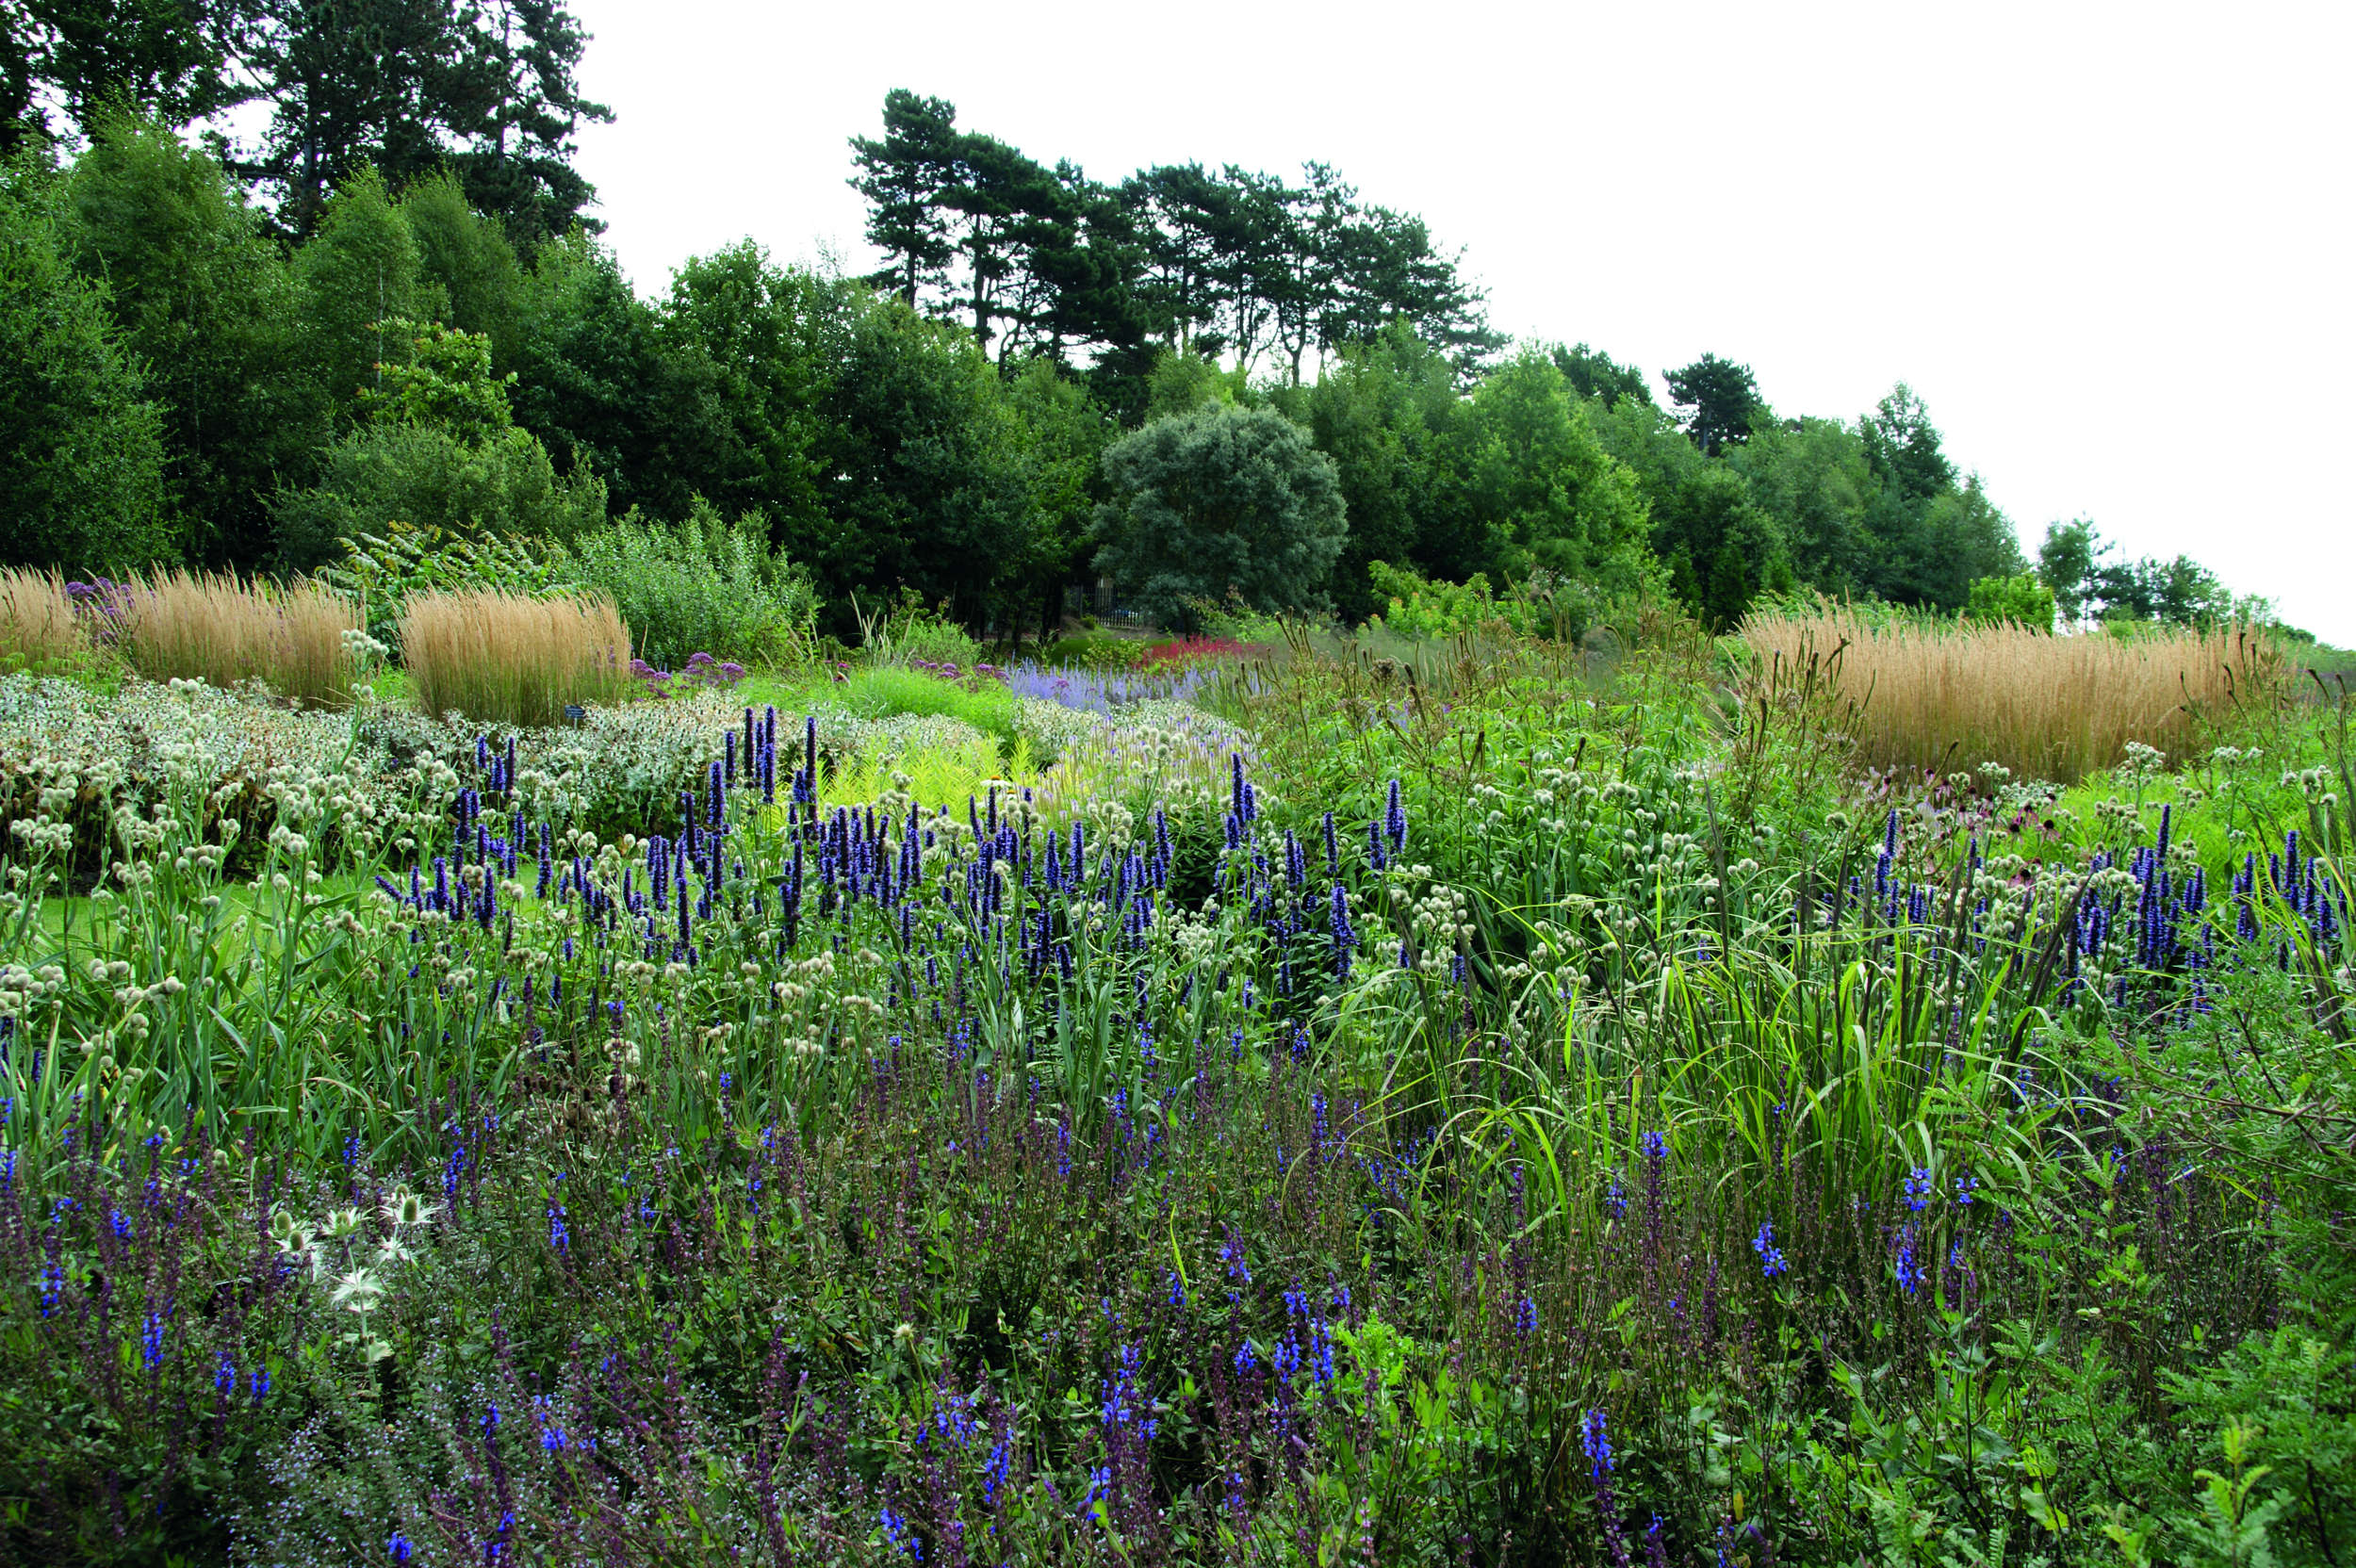 Plant By Numbers Garden Design planting design tips Above Oudolf Takes Design Inspiration From Natural Landscapes Where Plants Can Be Thought Of Occupying A Limited Number Of Physical Layers Within A